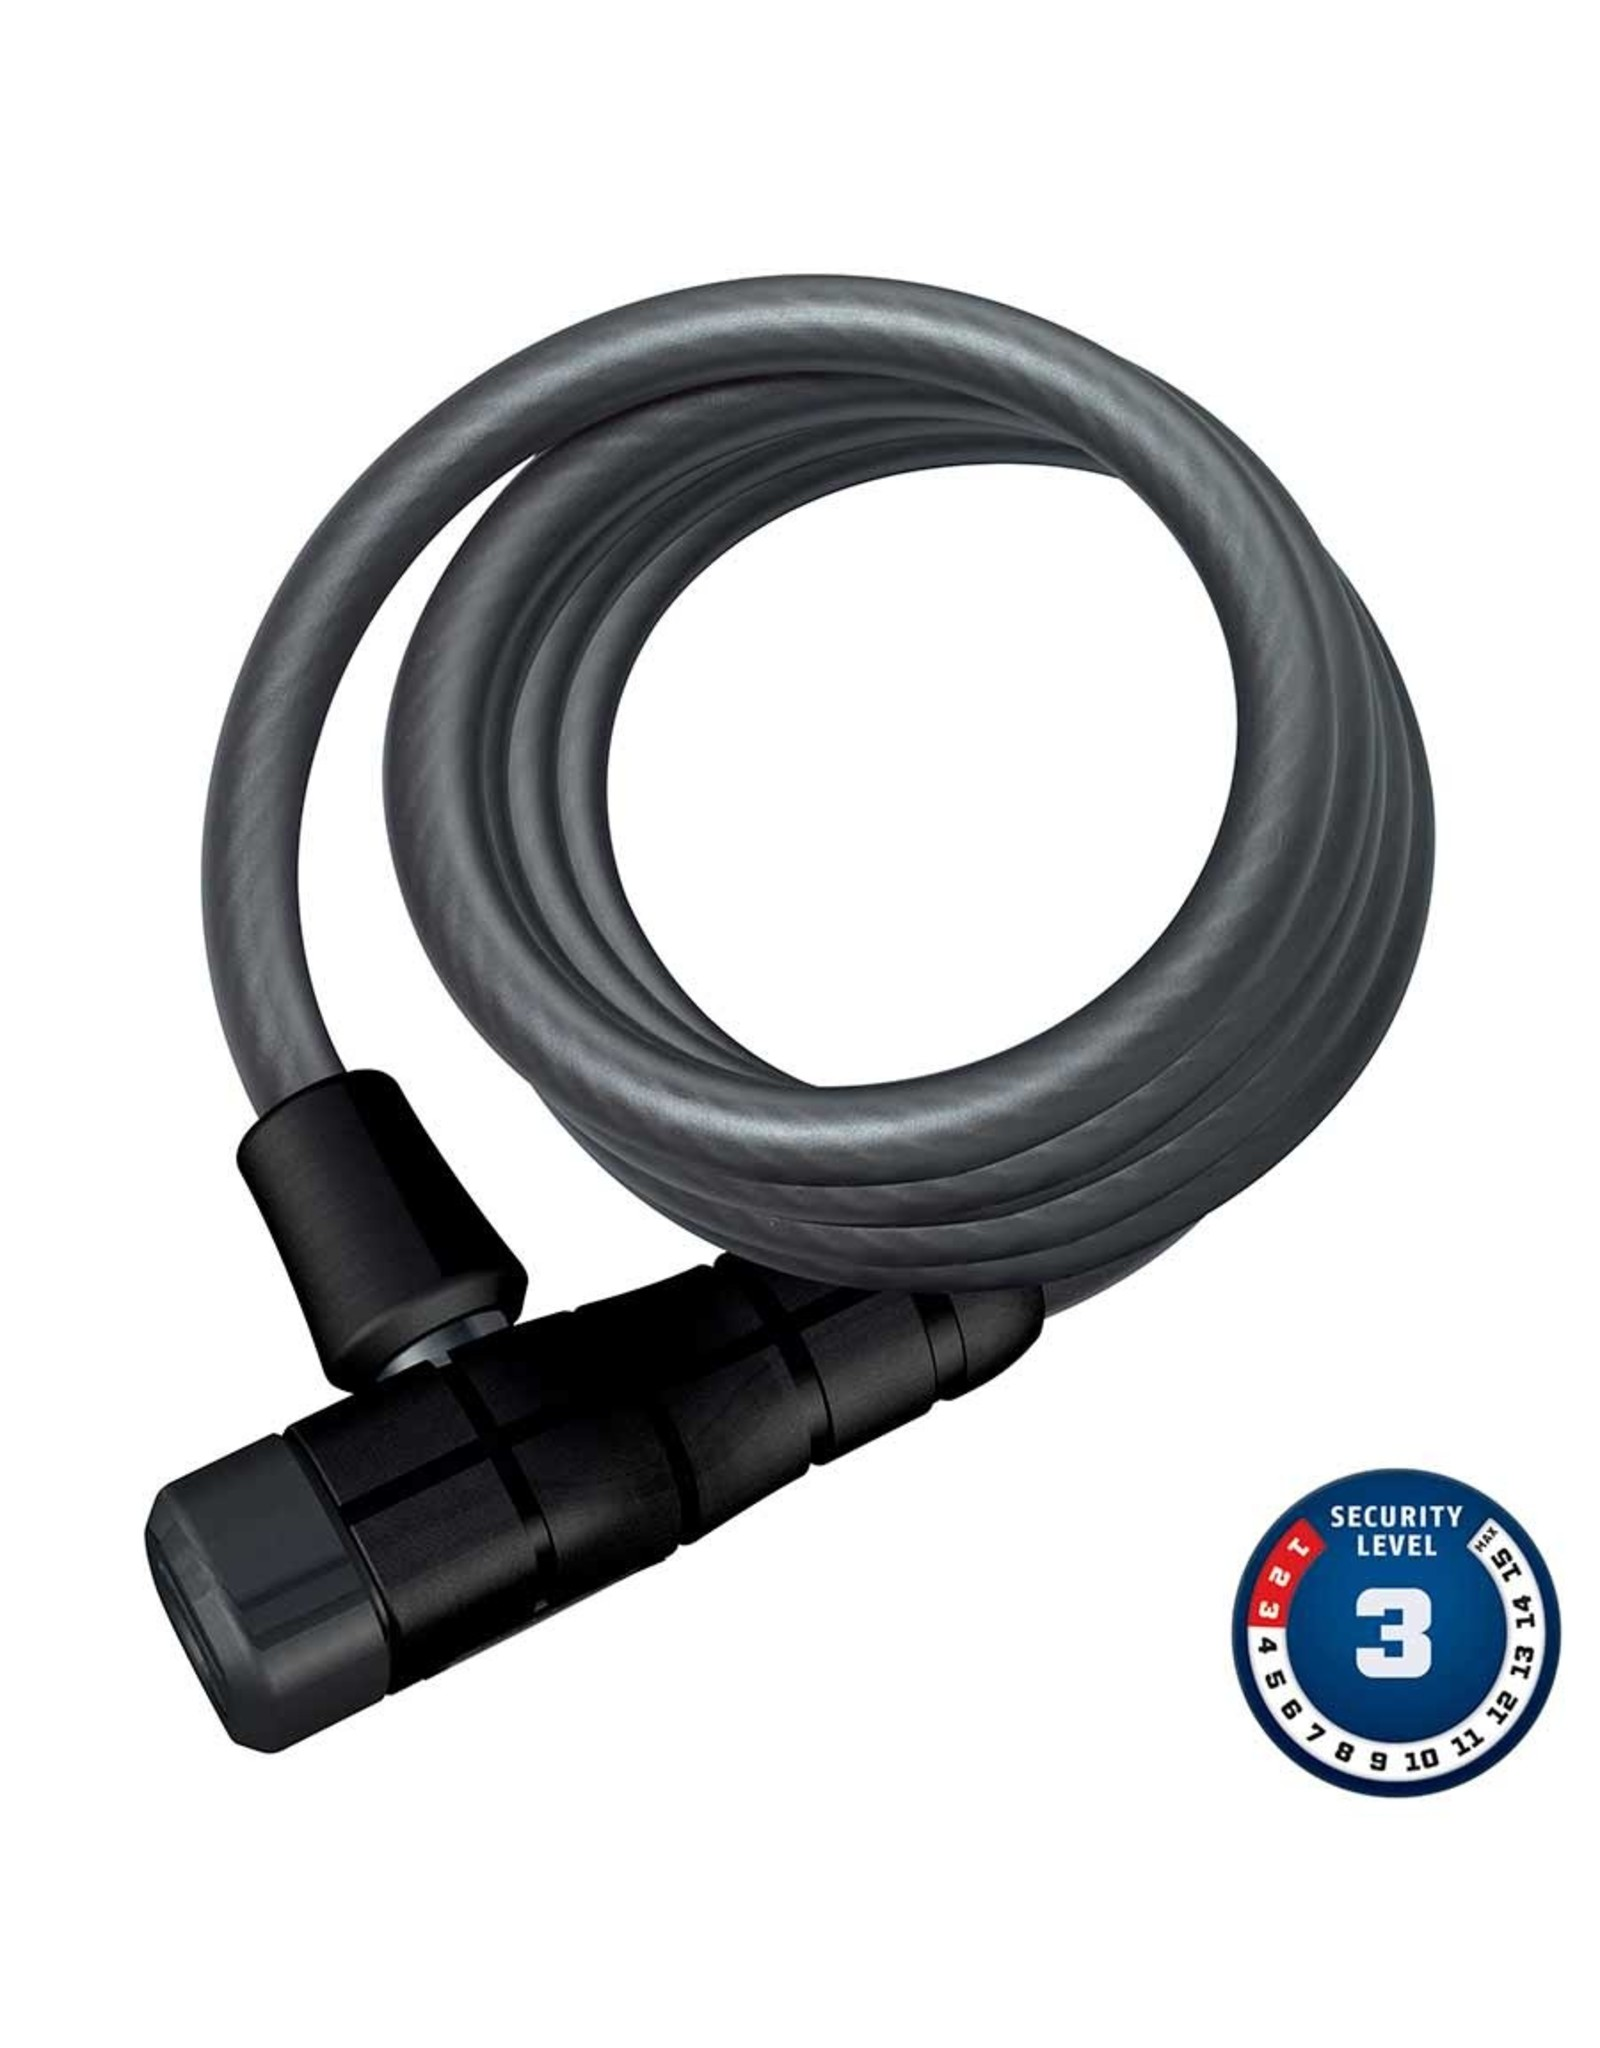 Primo 5510K, Cable with key lock, 10mm x 180cm (12mm x 5.9')